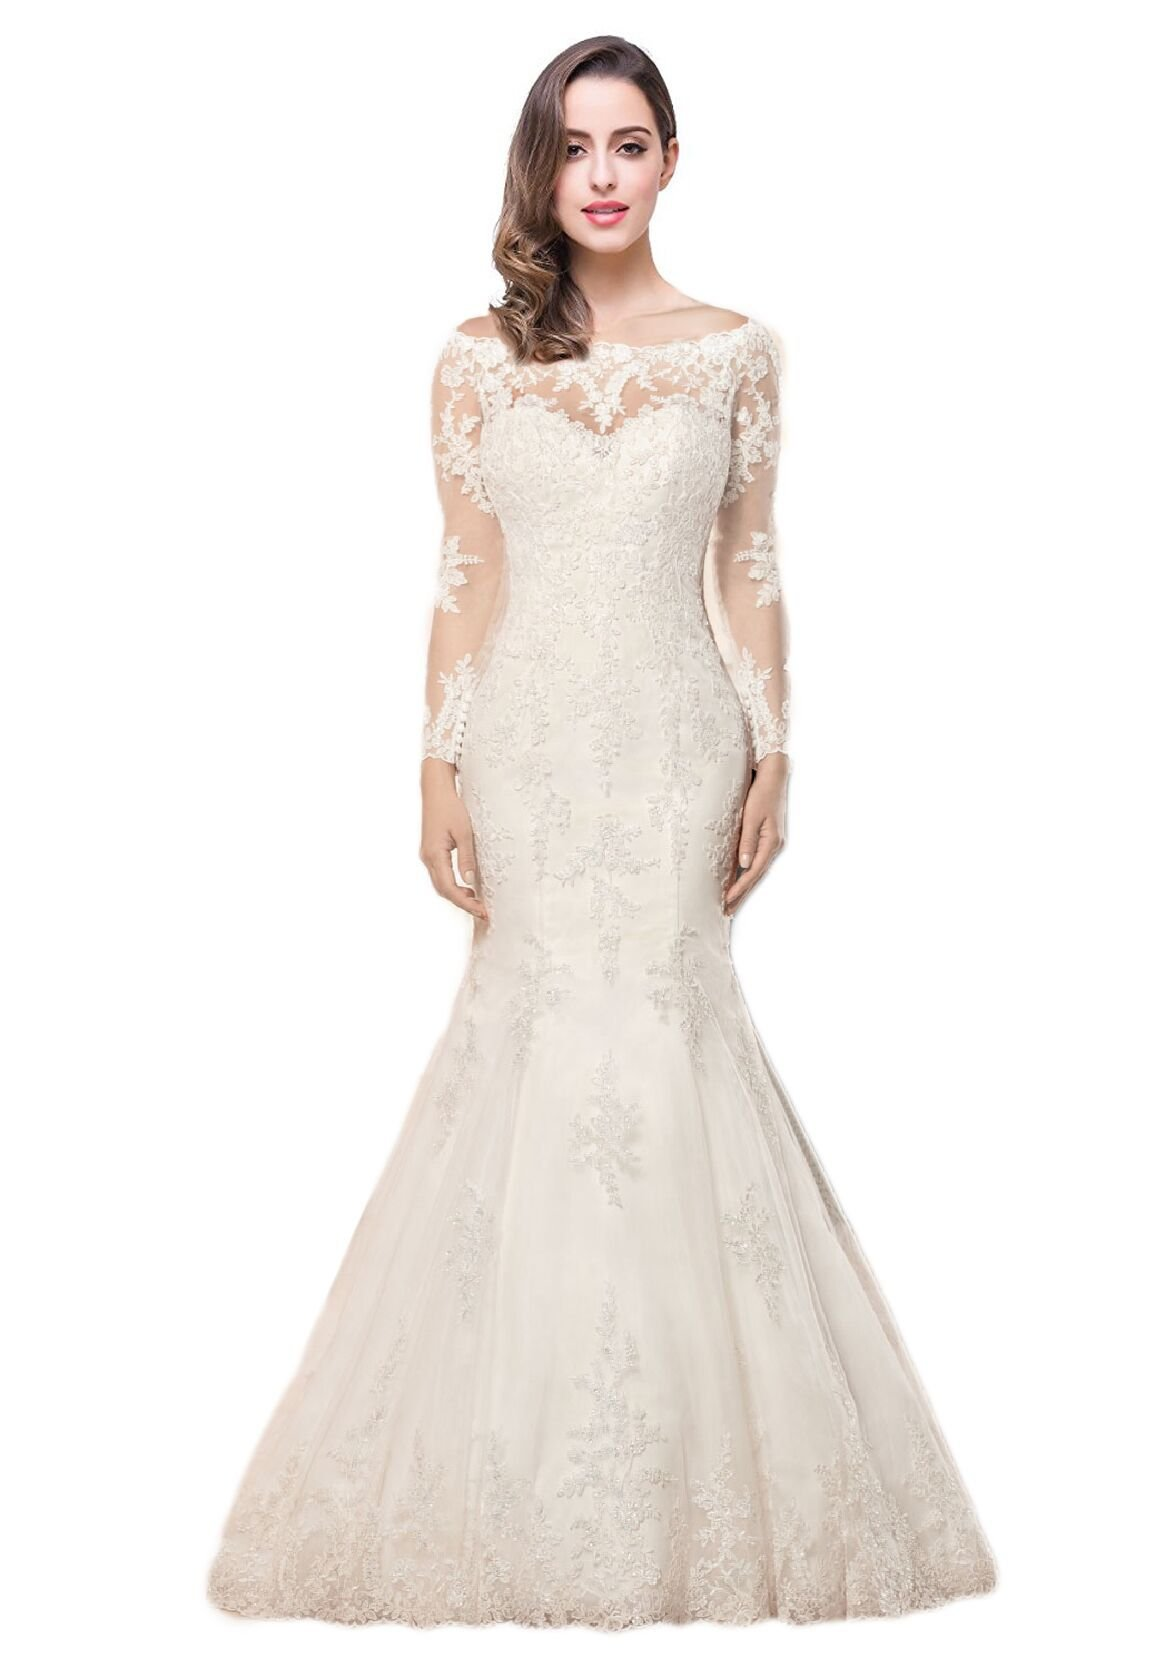 OYISHA 2017 Lace Mermaid Wedding Dress Open Back Lace up Bridal Gown WD166S Ivory 6